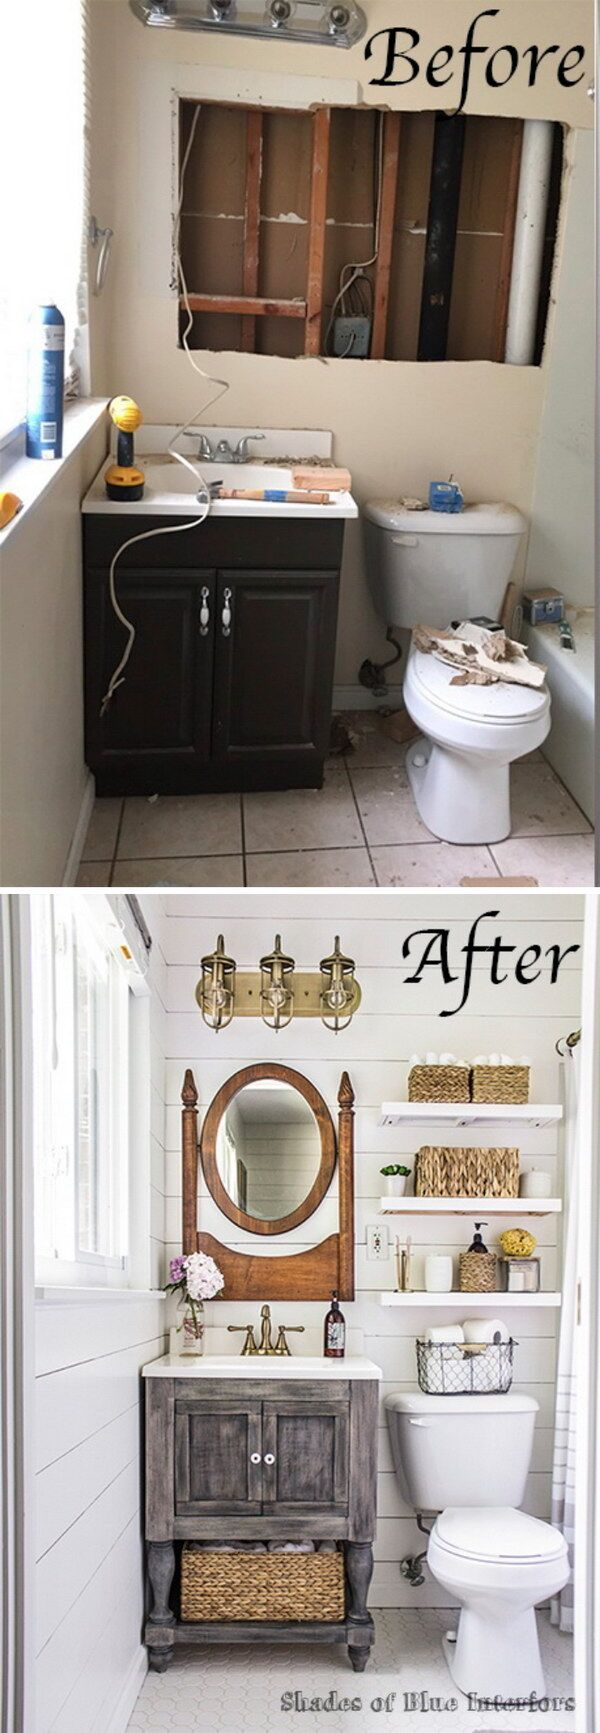 1 Before and After Master Bathroom Makeover